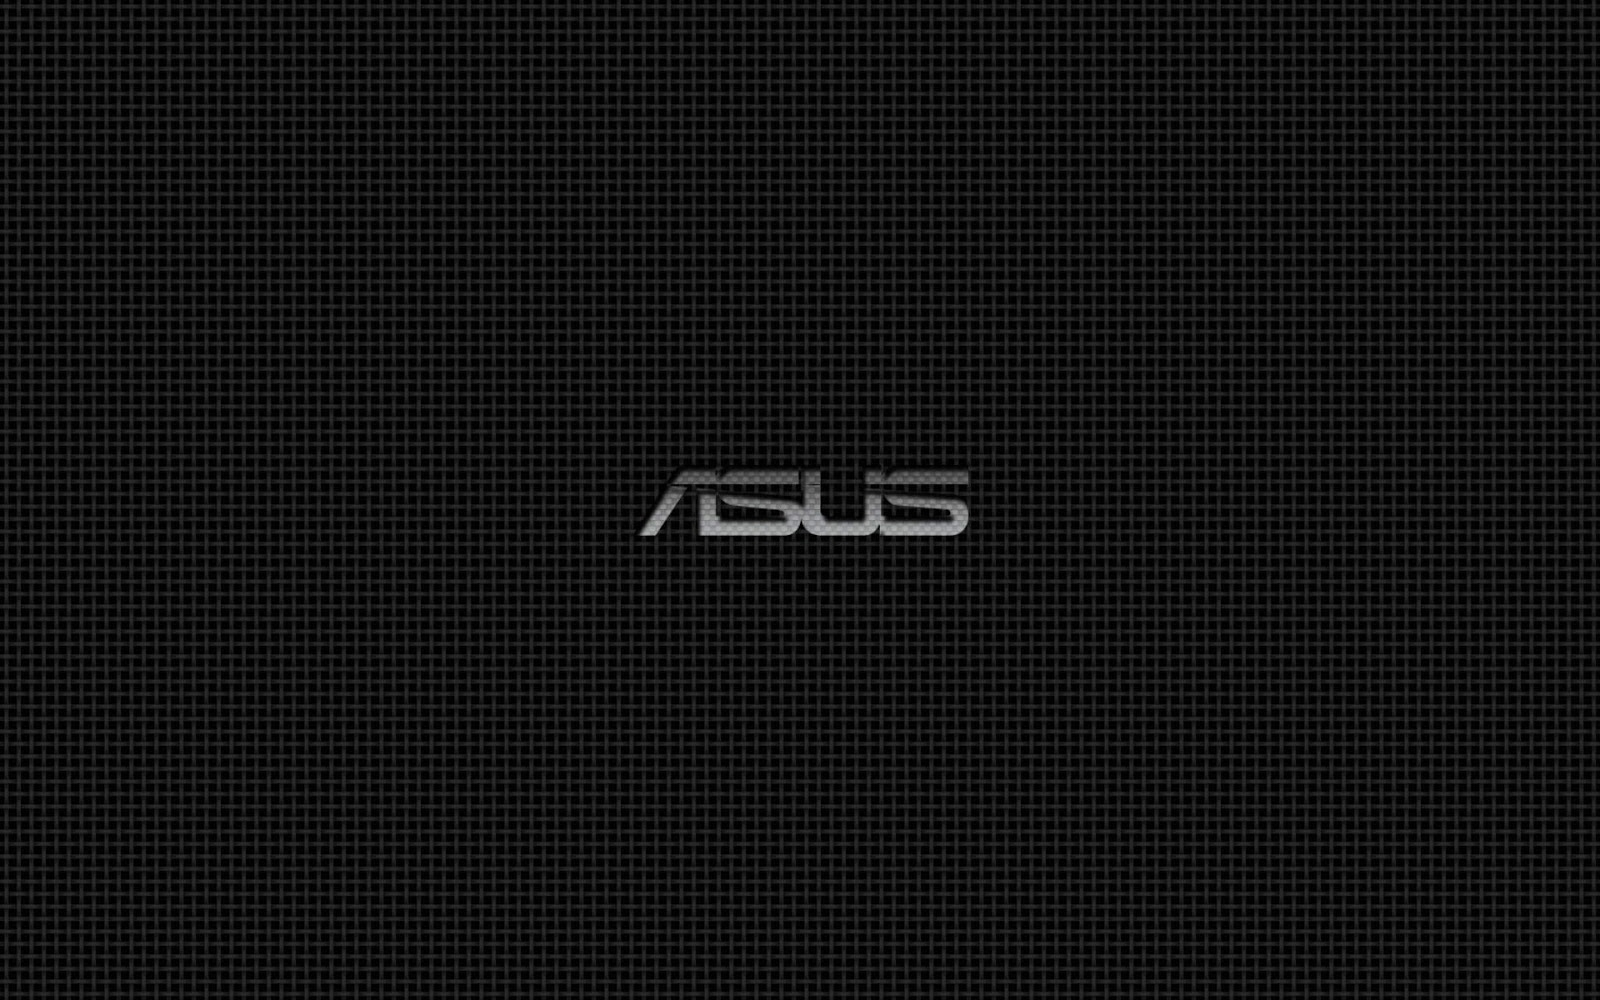 Asus Dark Background HD Wallpaper i03 1600x1000